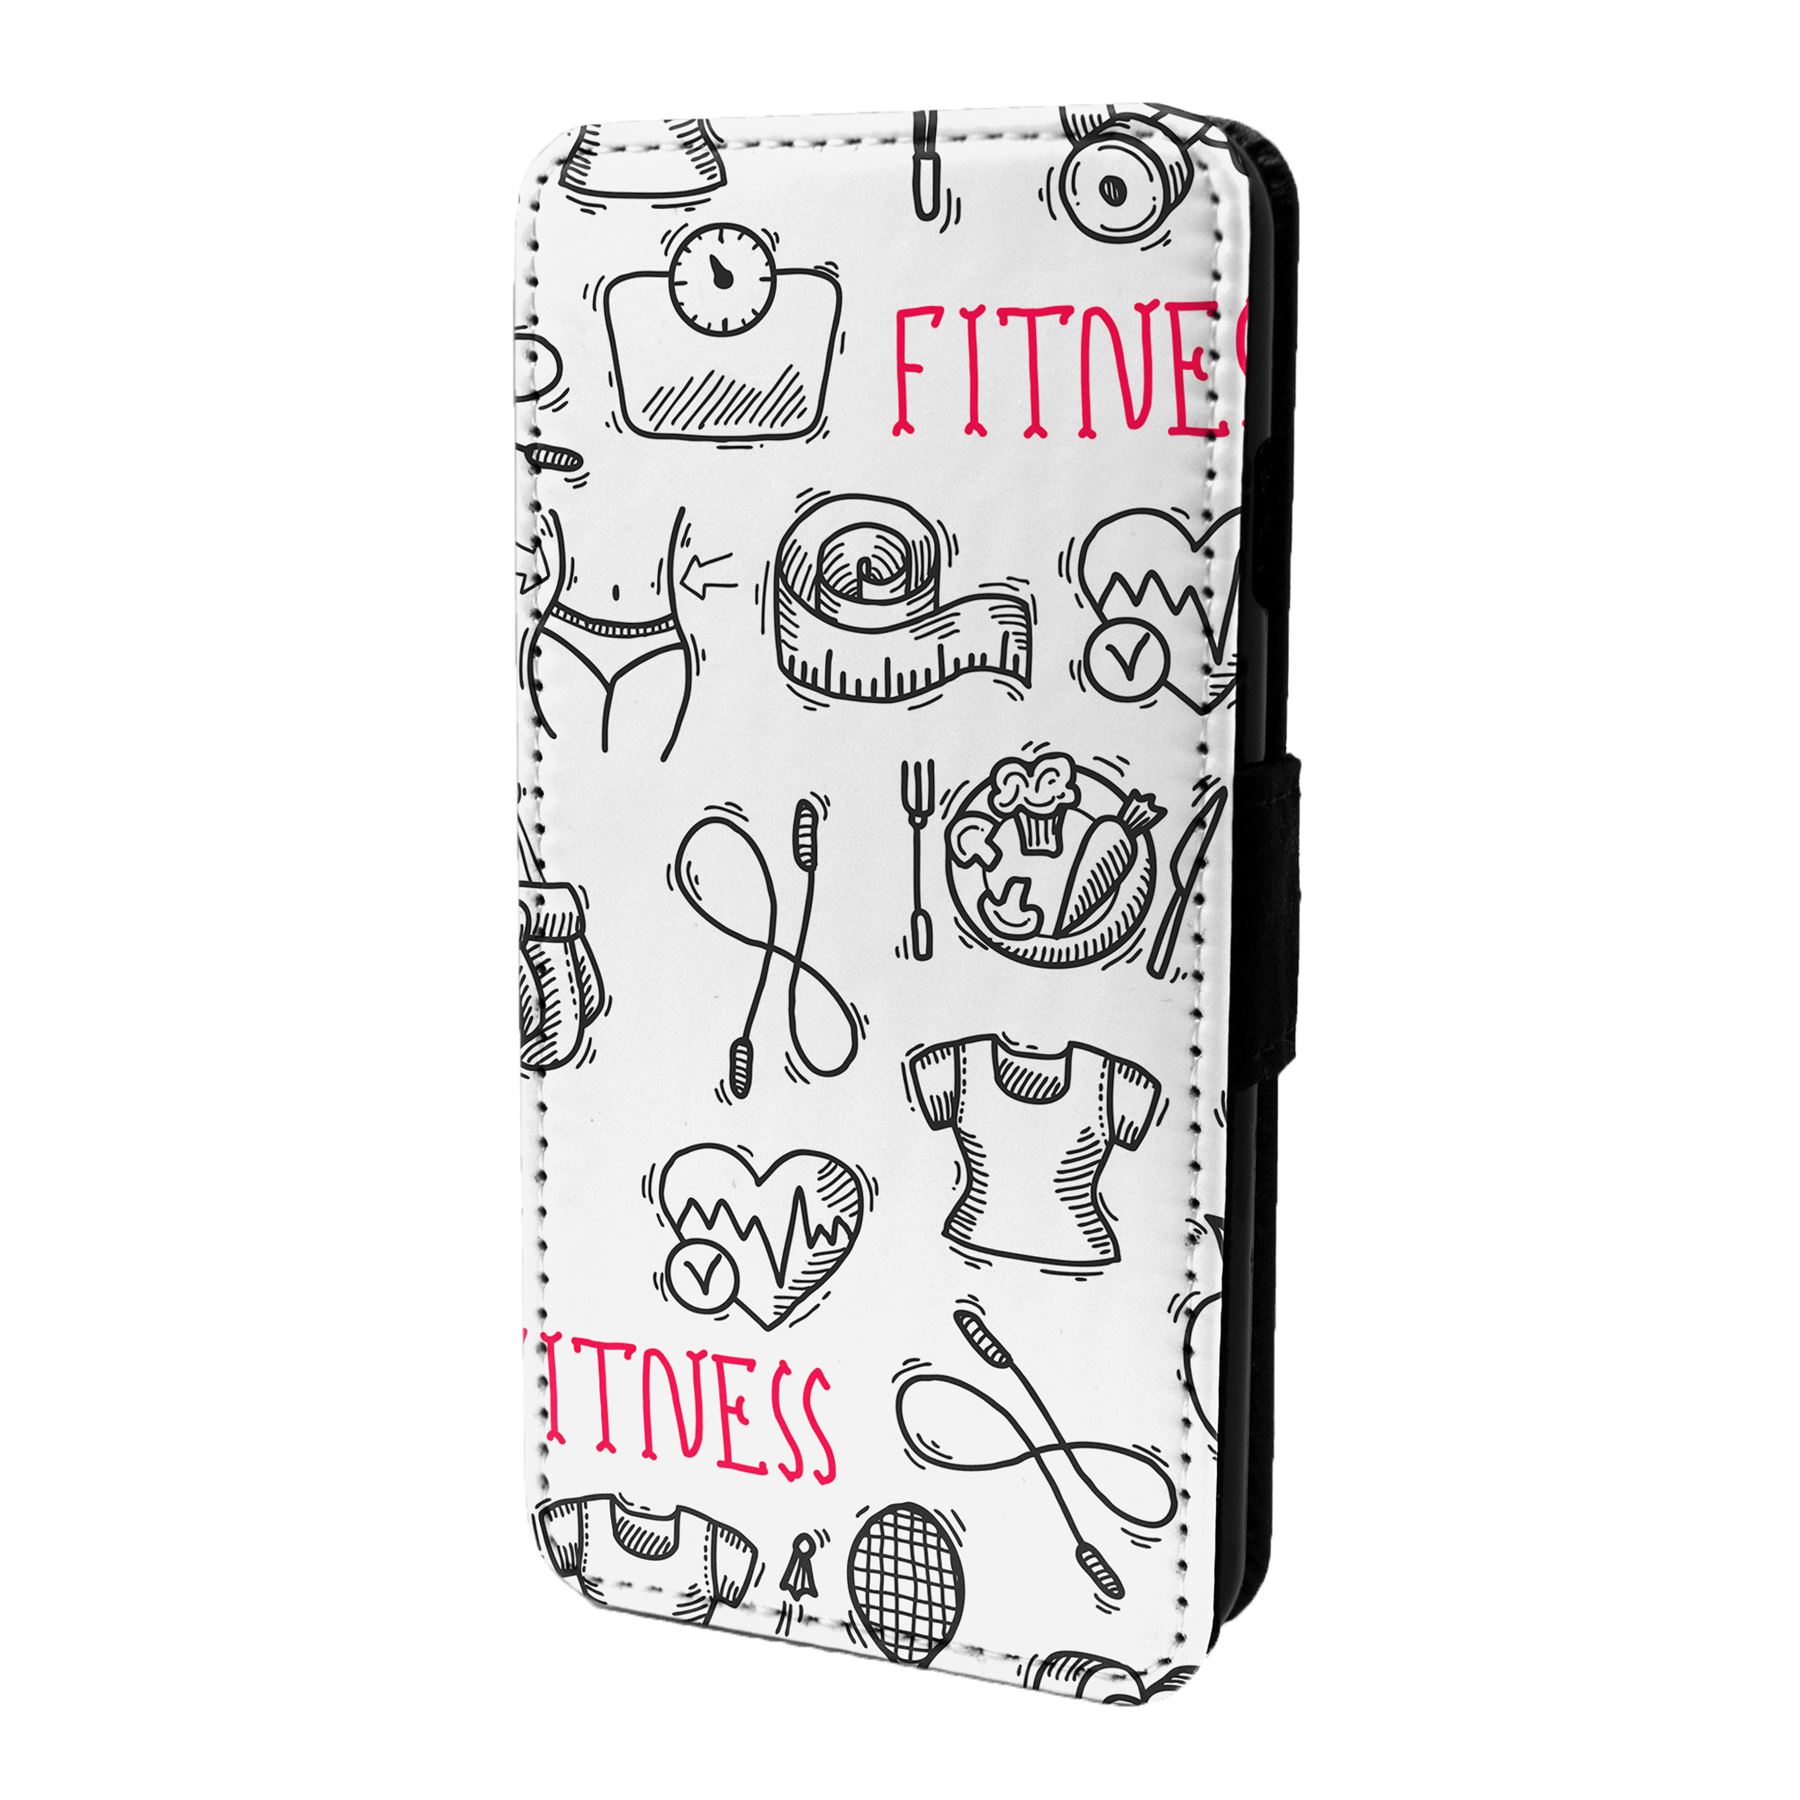 Fitness-Gym-Motif-Etui-Rabattable-pour-Telephone-Portable-S6687